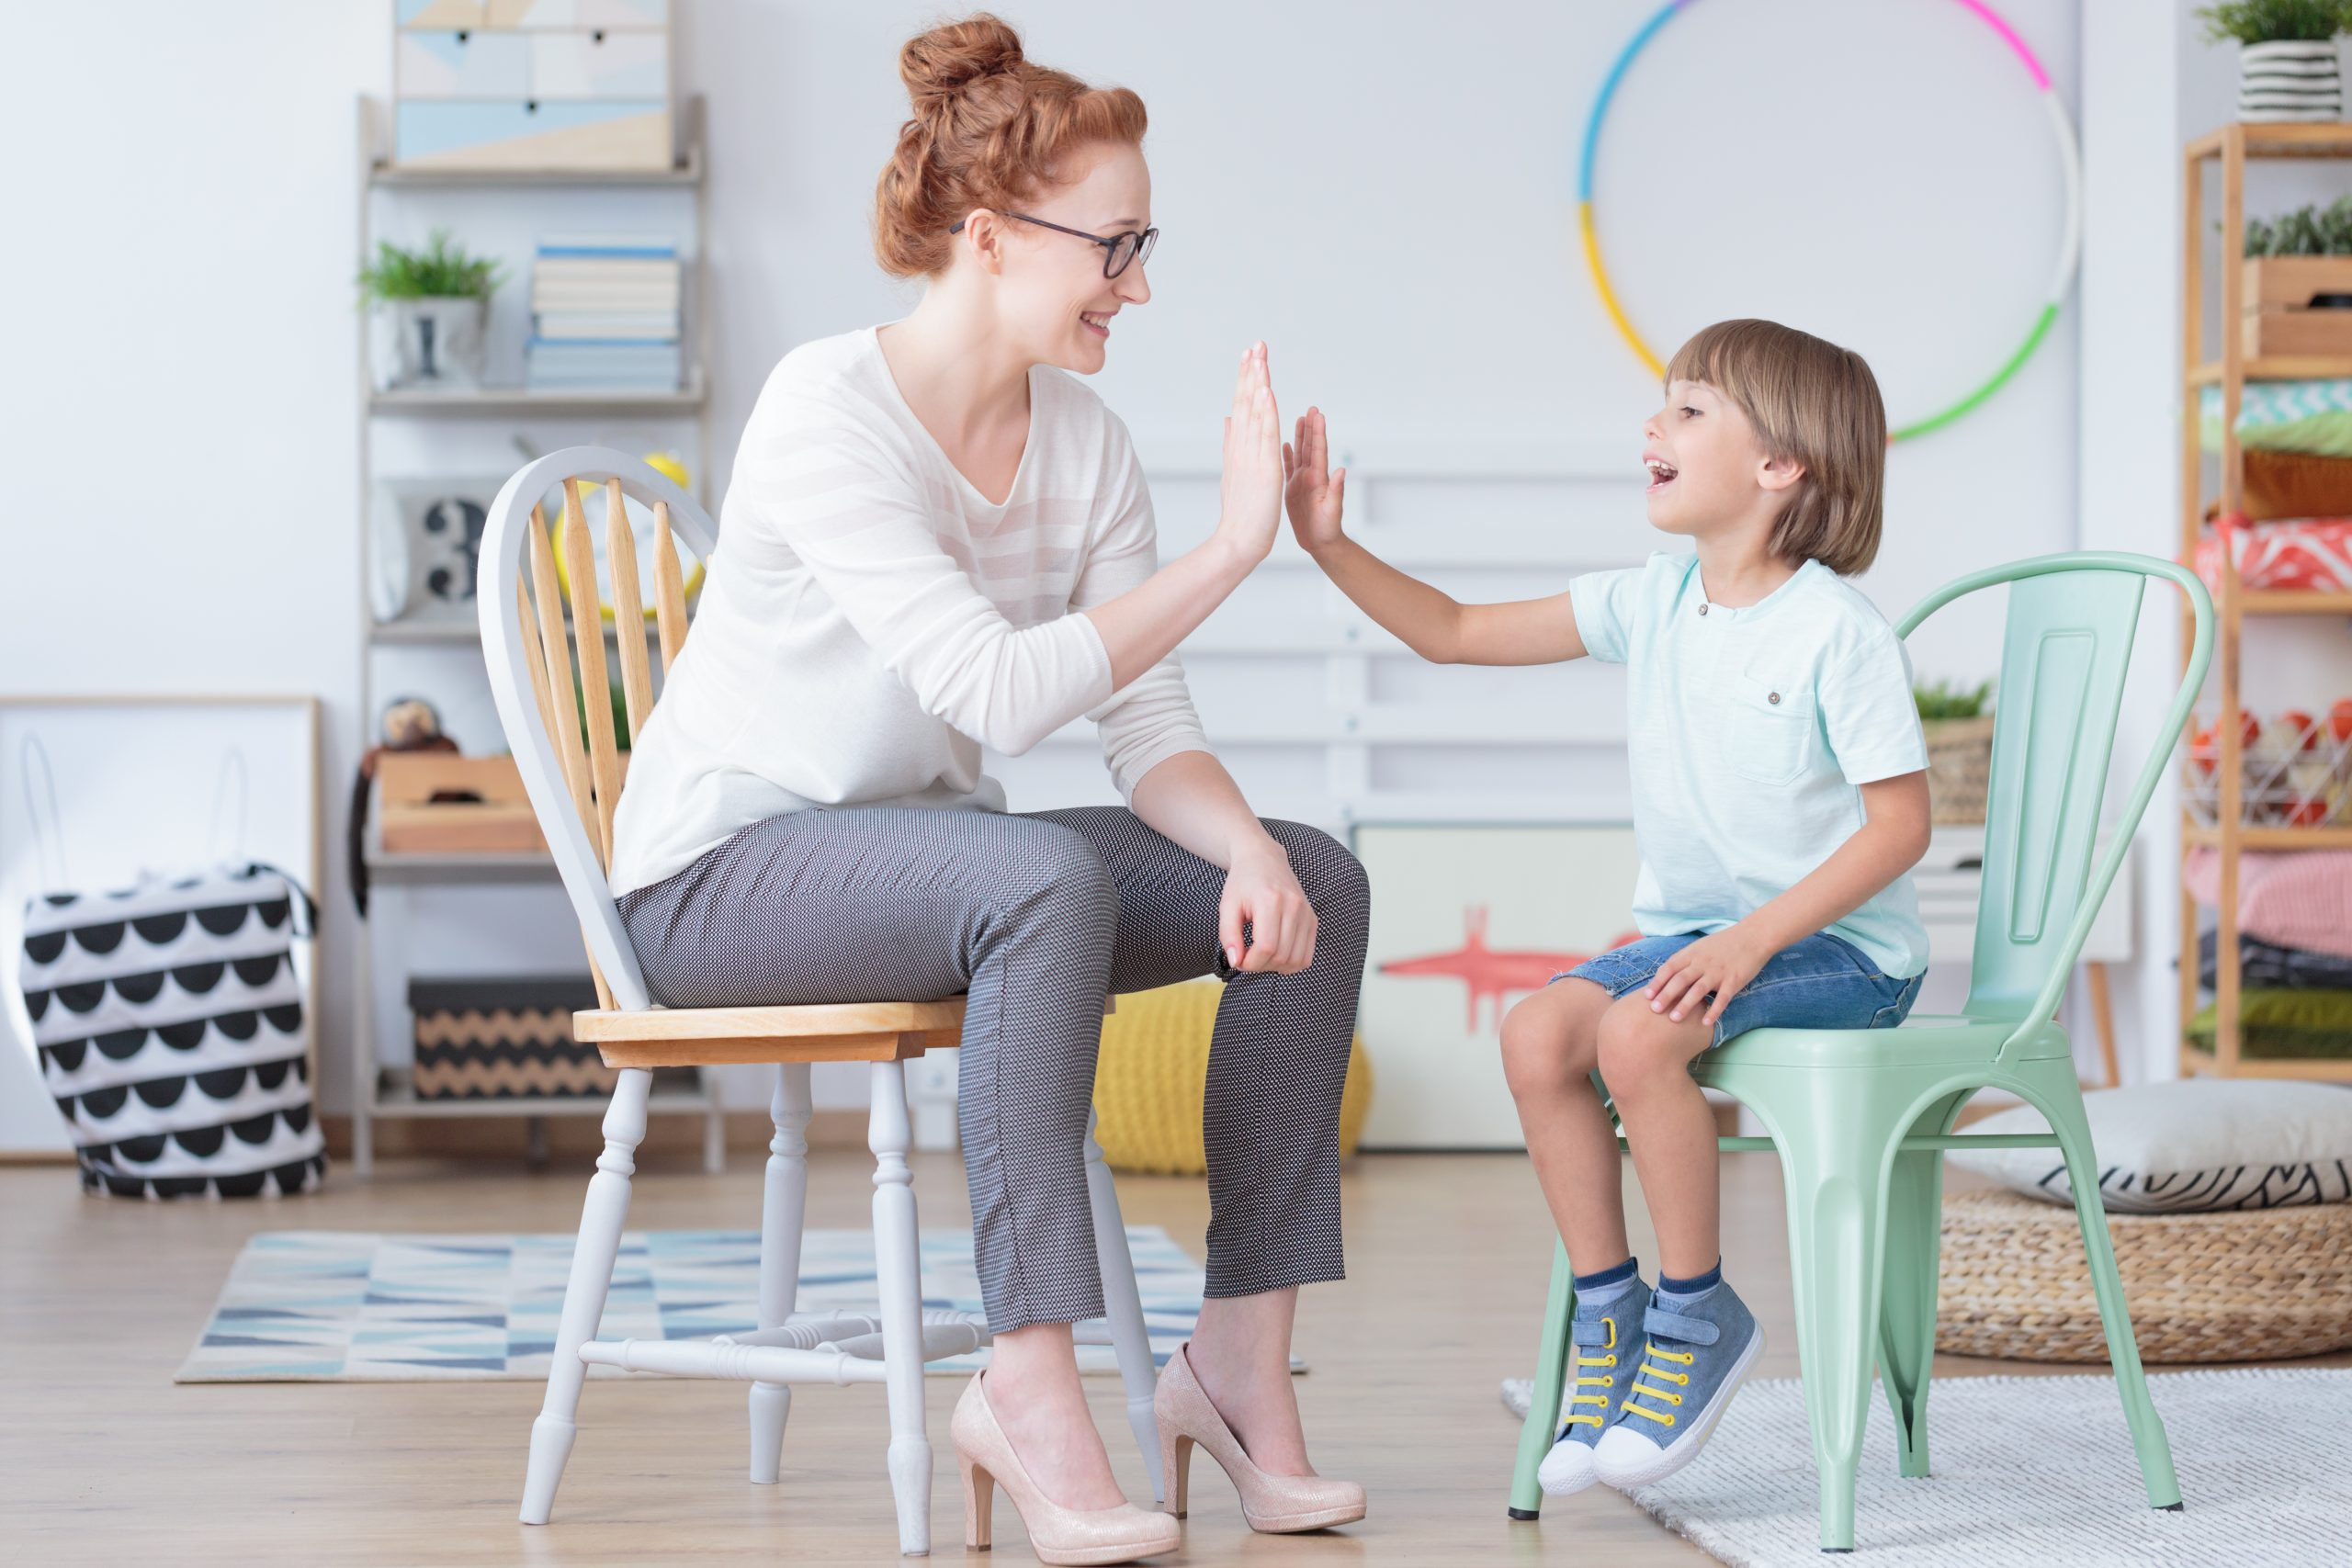 therapist giving child with autism high five during ABA therapy session